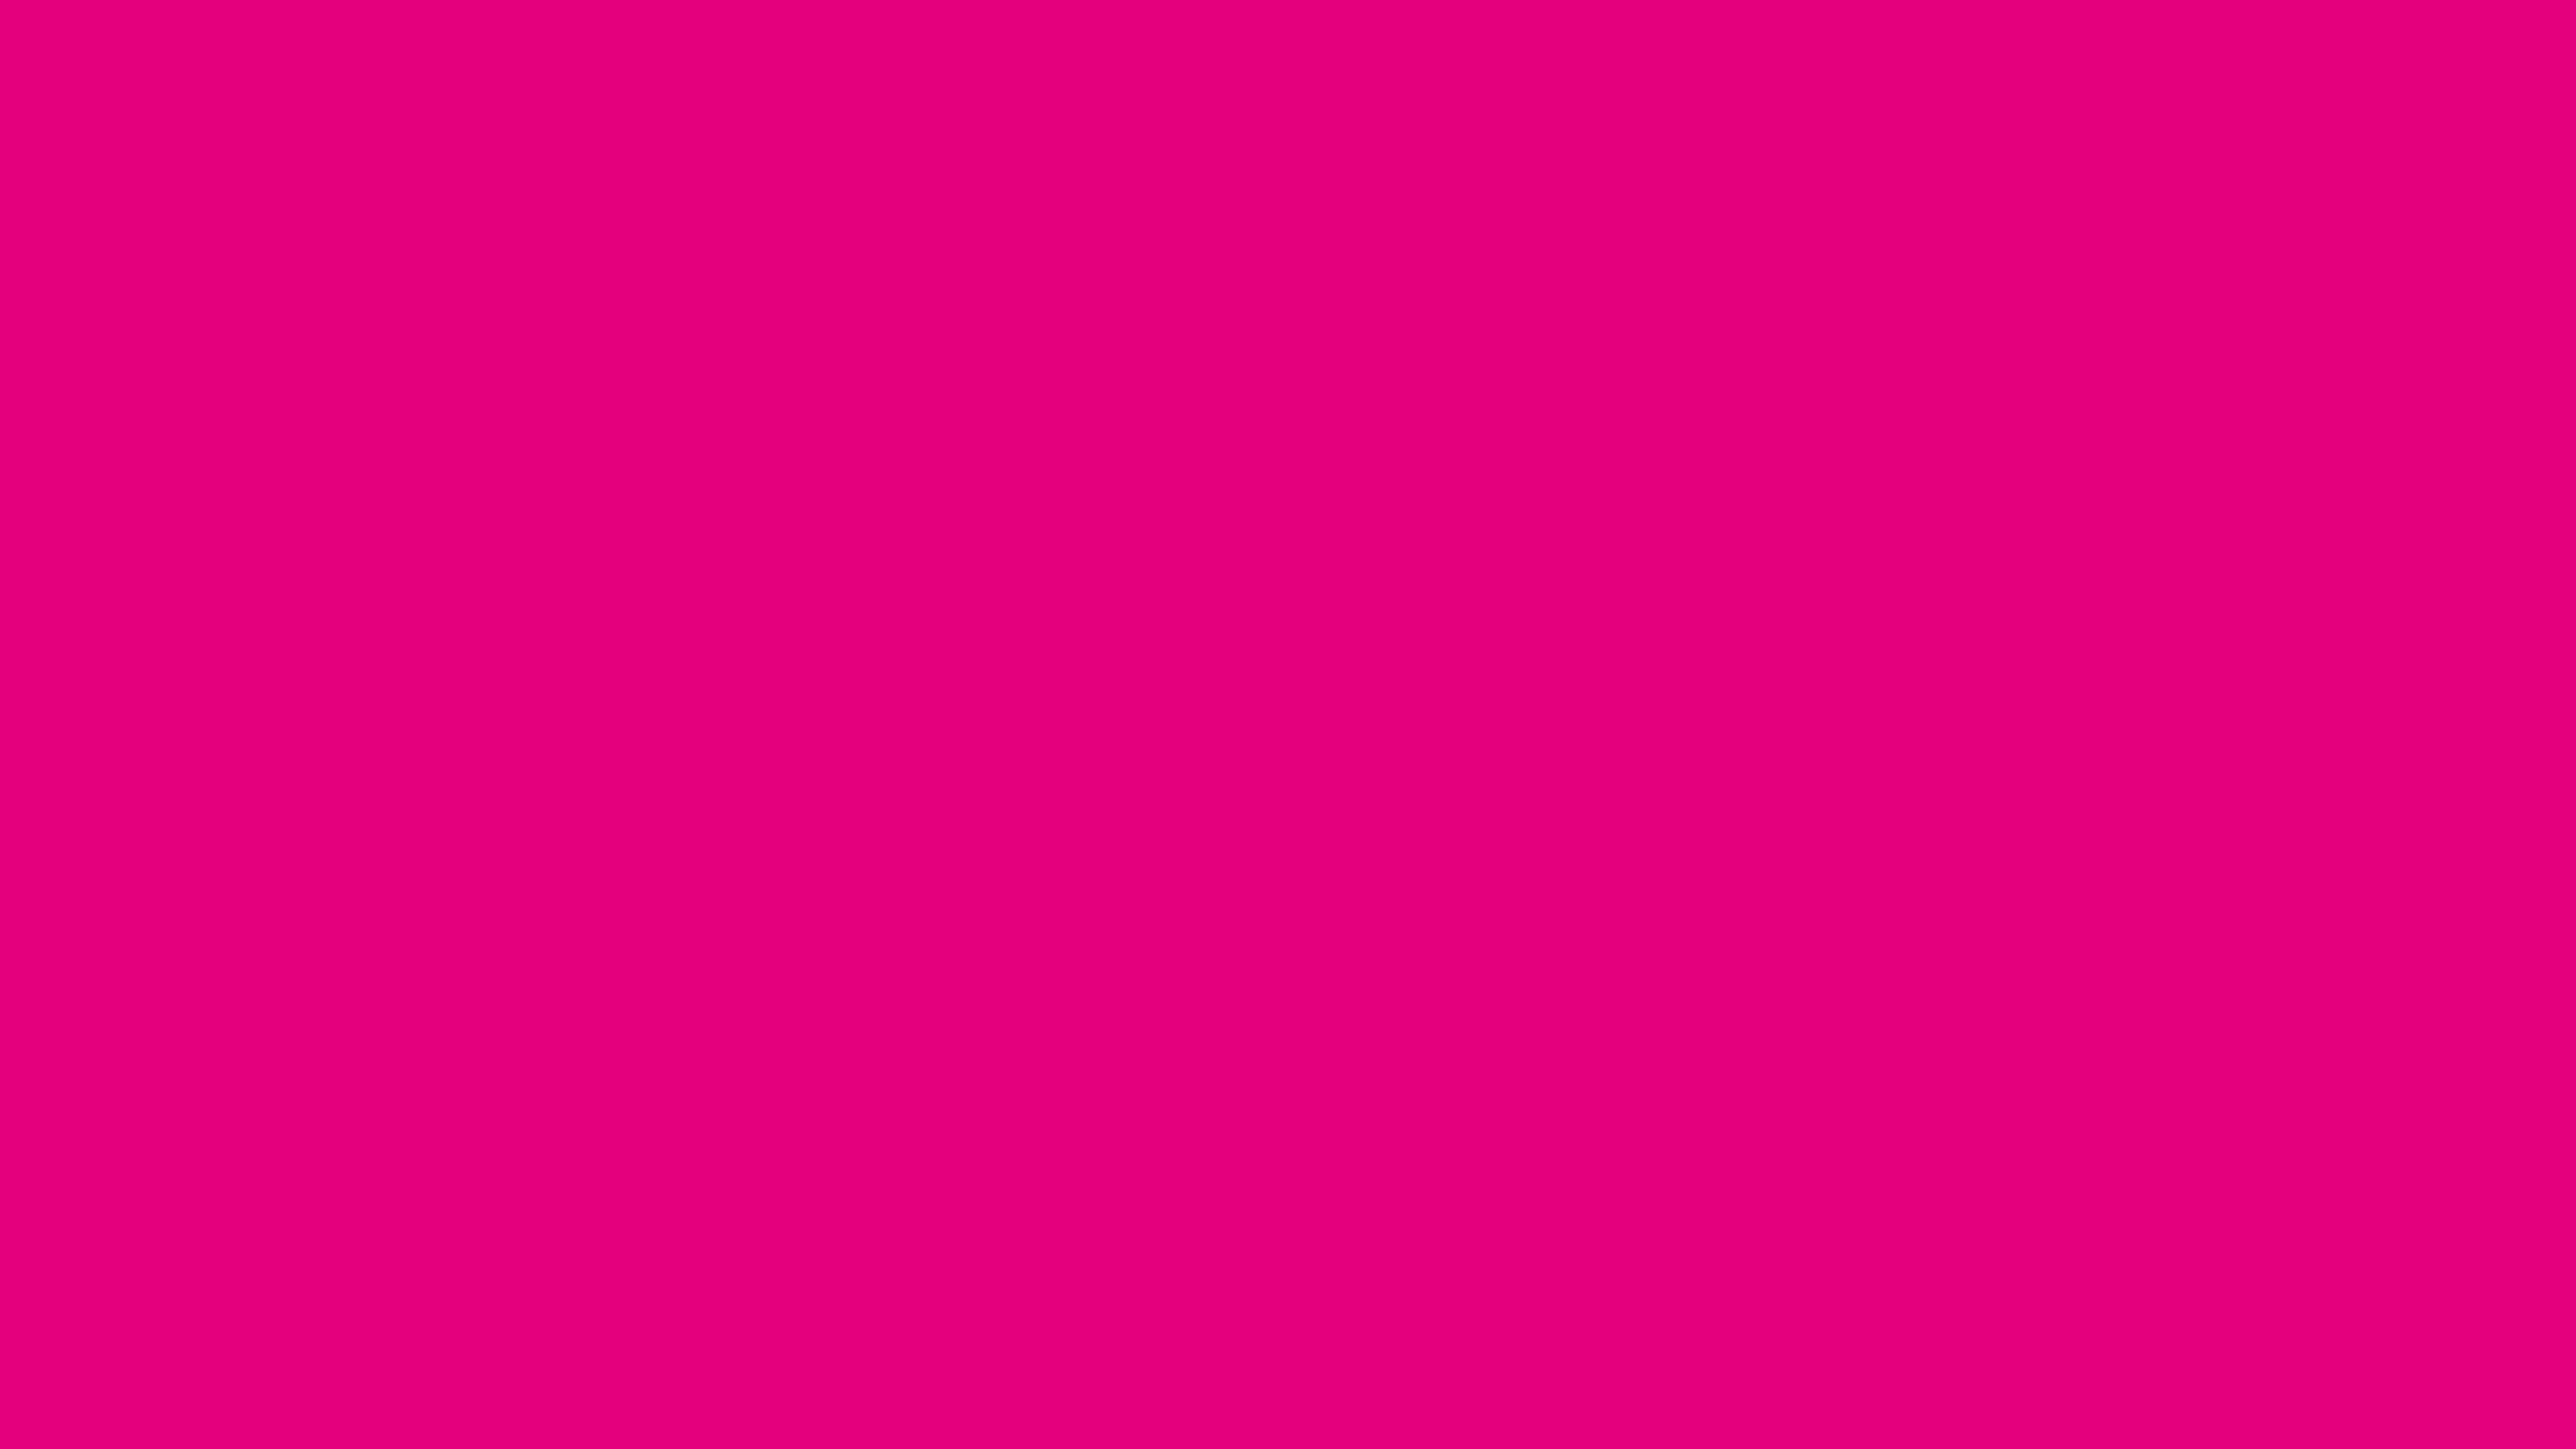 4096x2304 Mexican Pink Solid Color Background